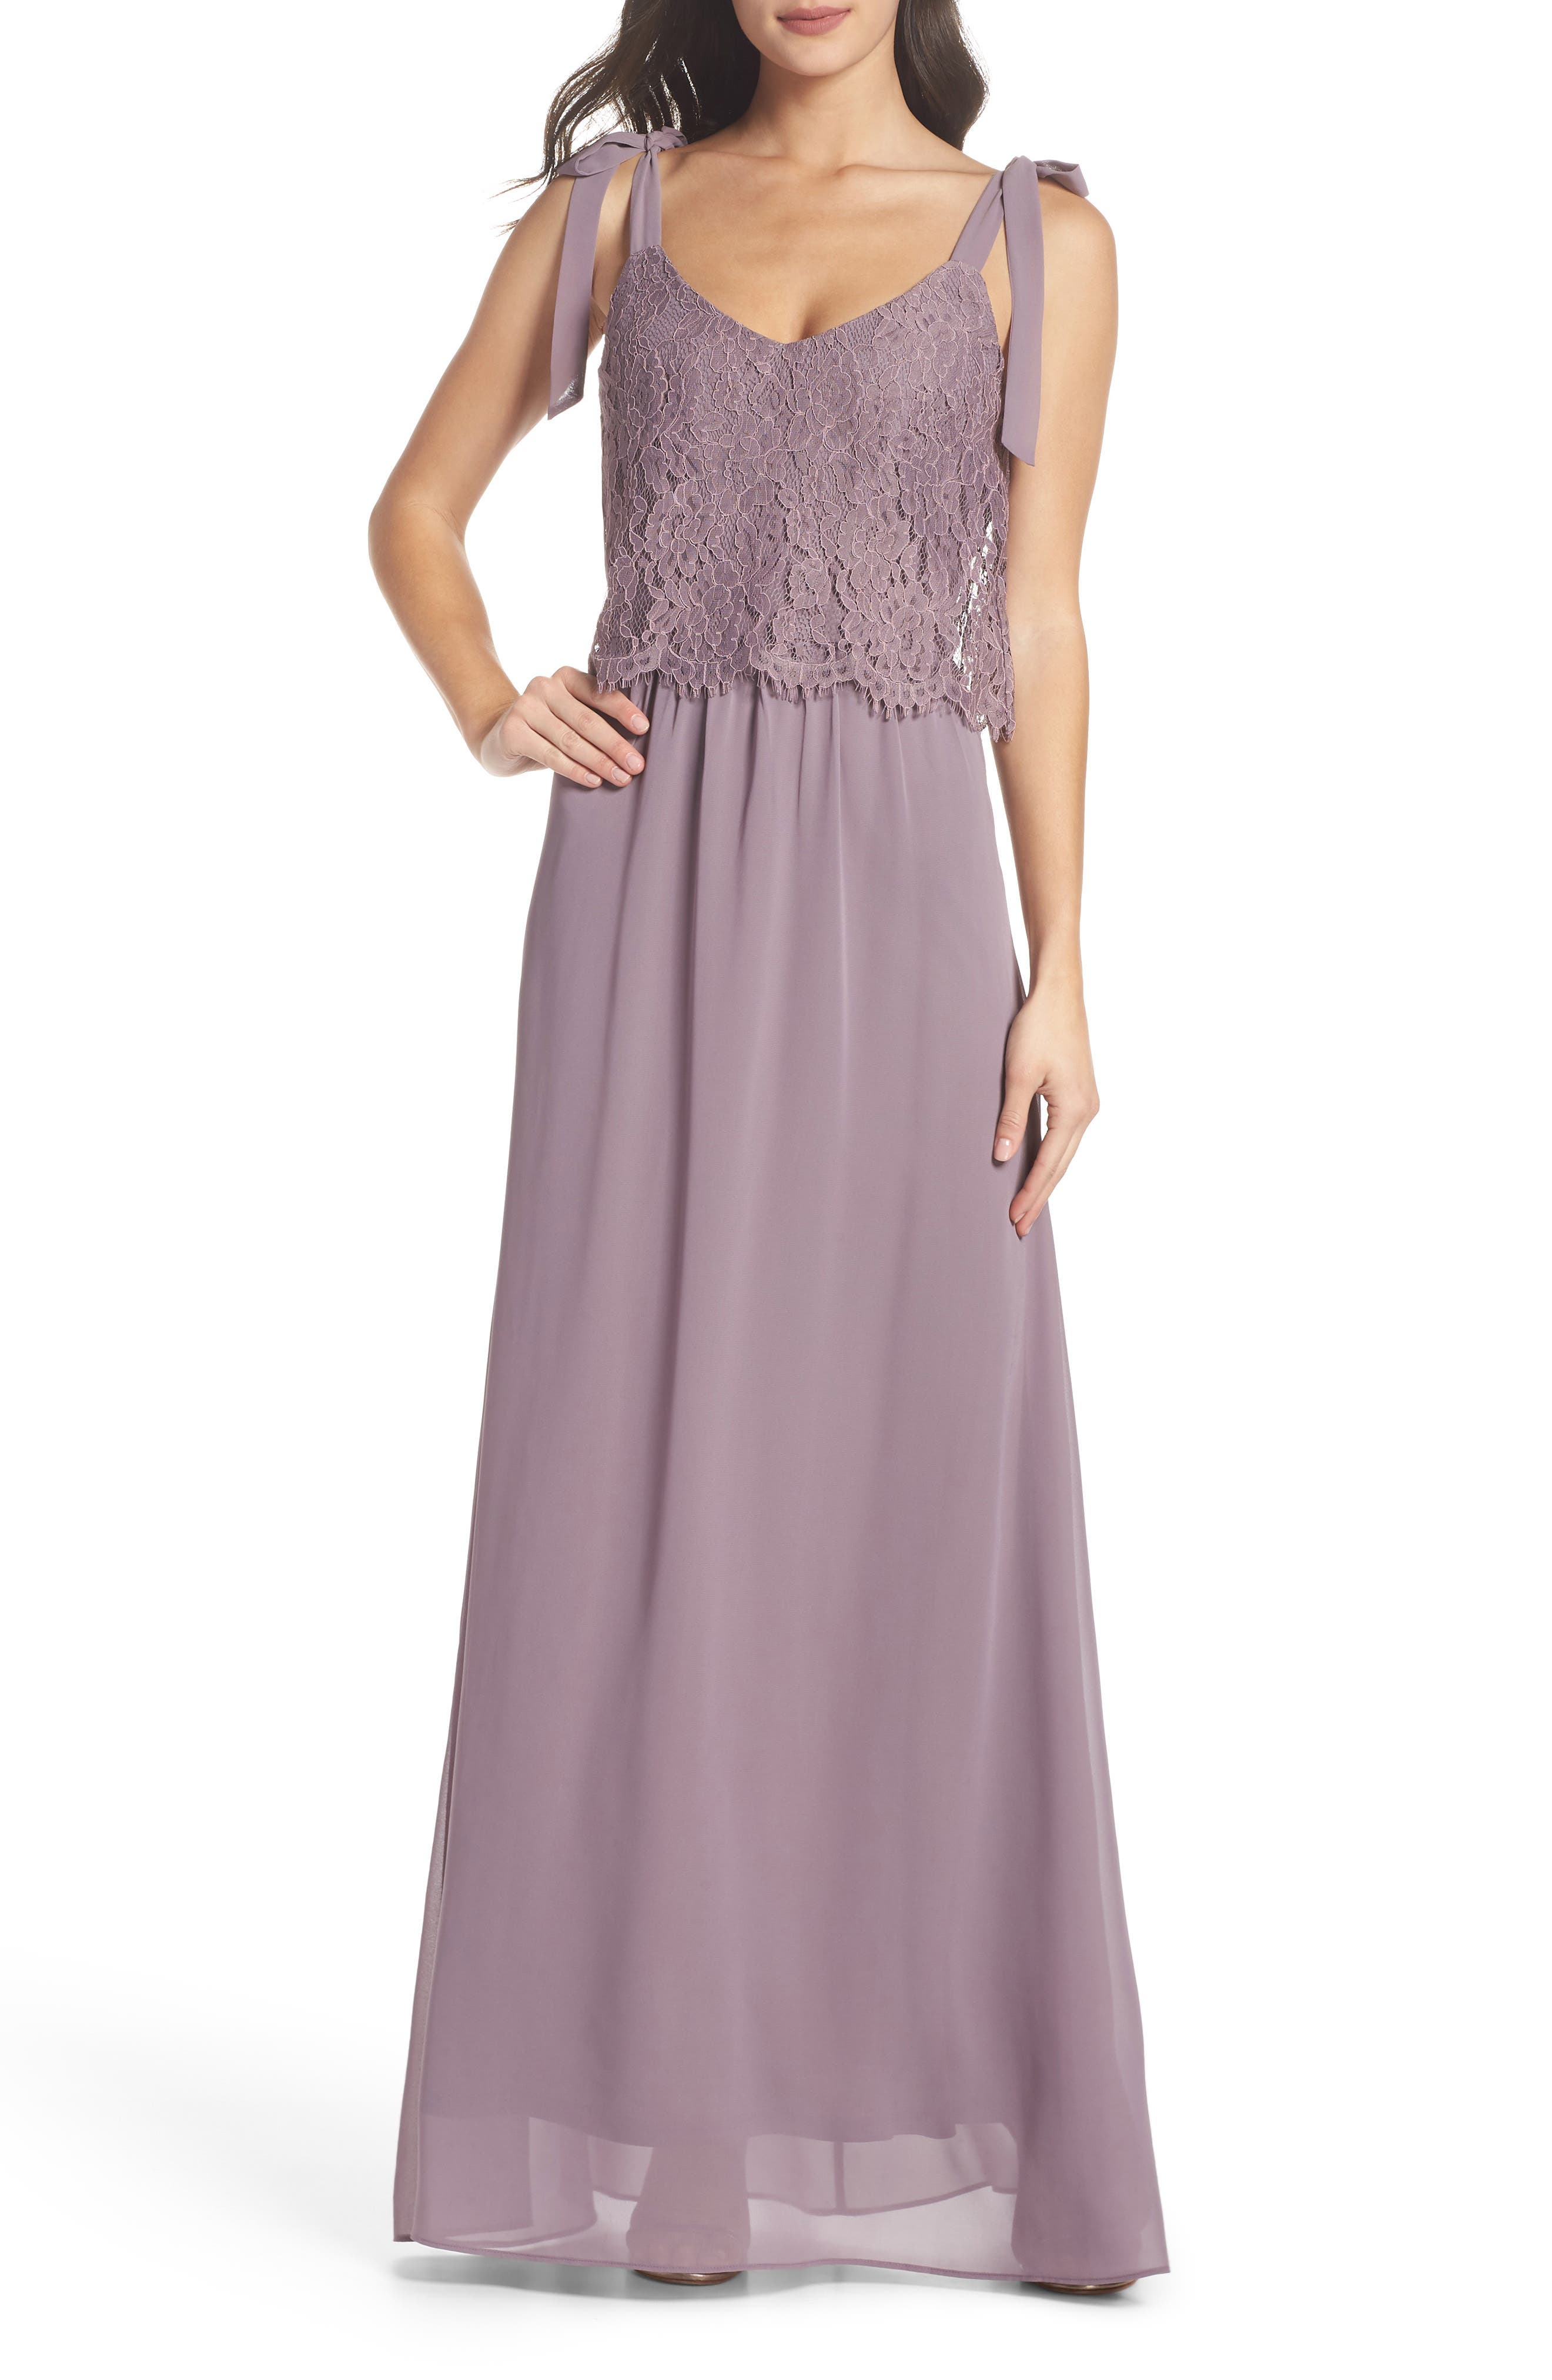 Koko Tie Shoulder Lace Bodice Gown,                         Main,                         color, LILAC